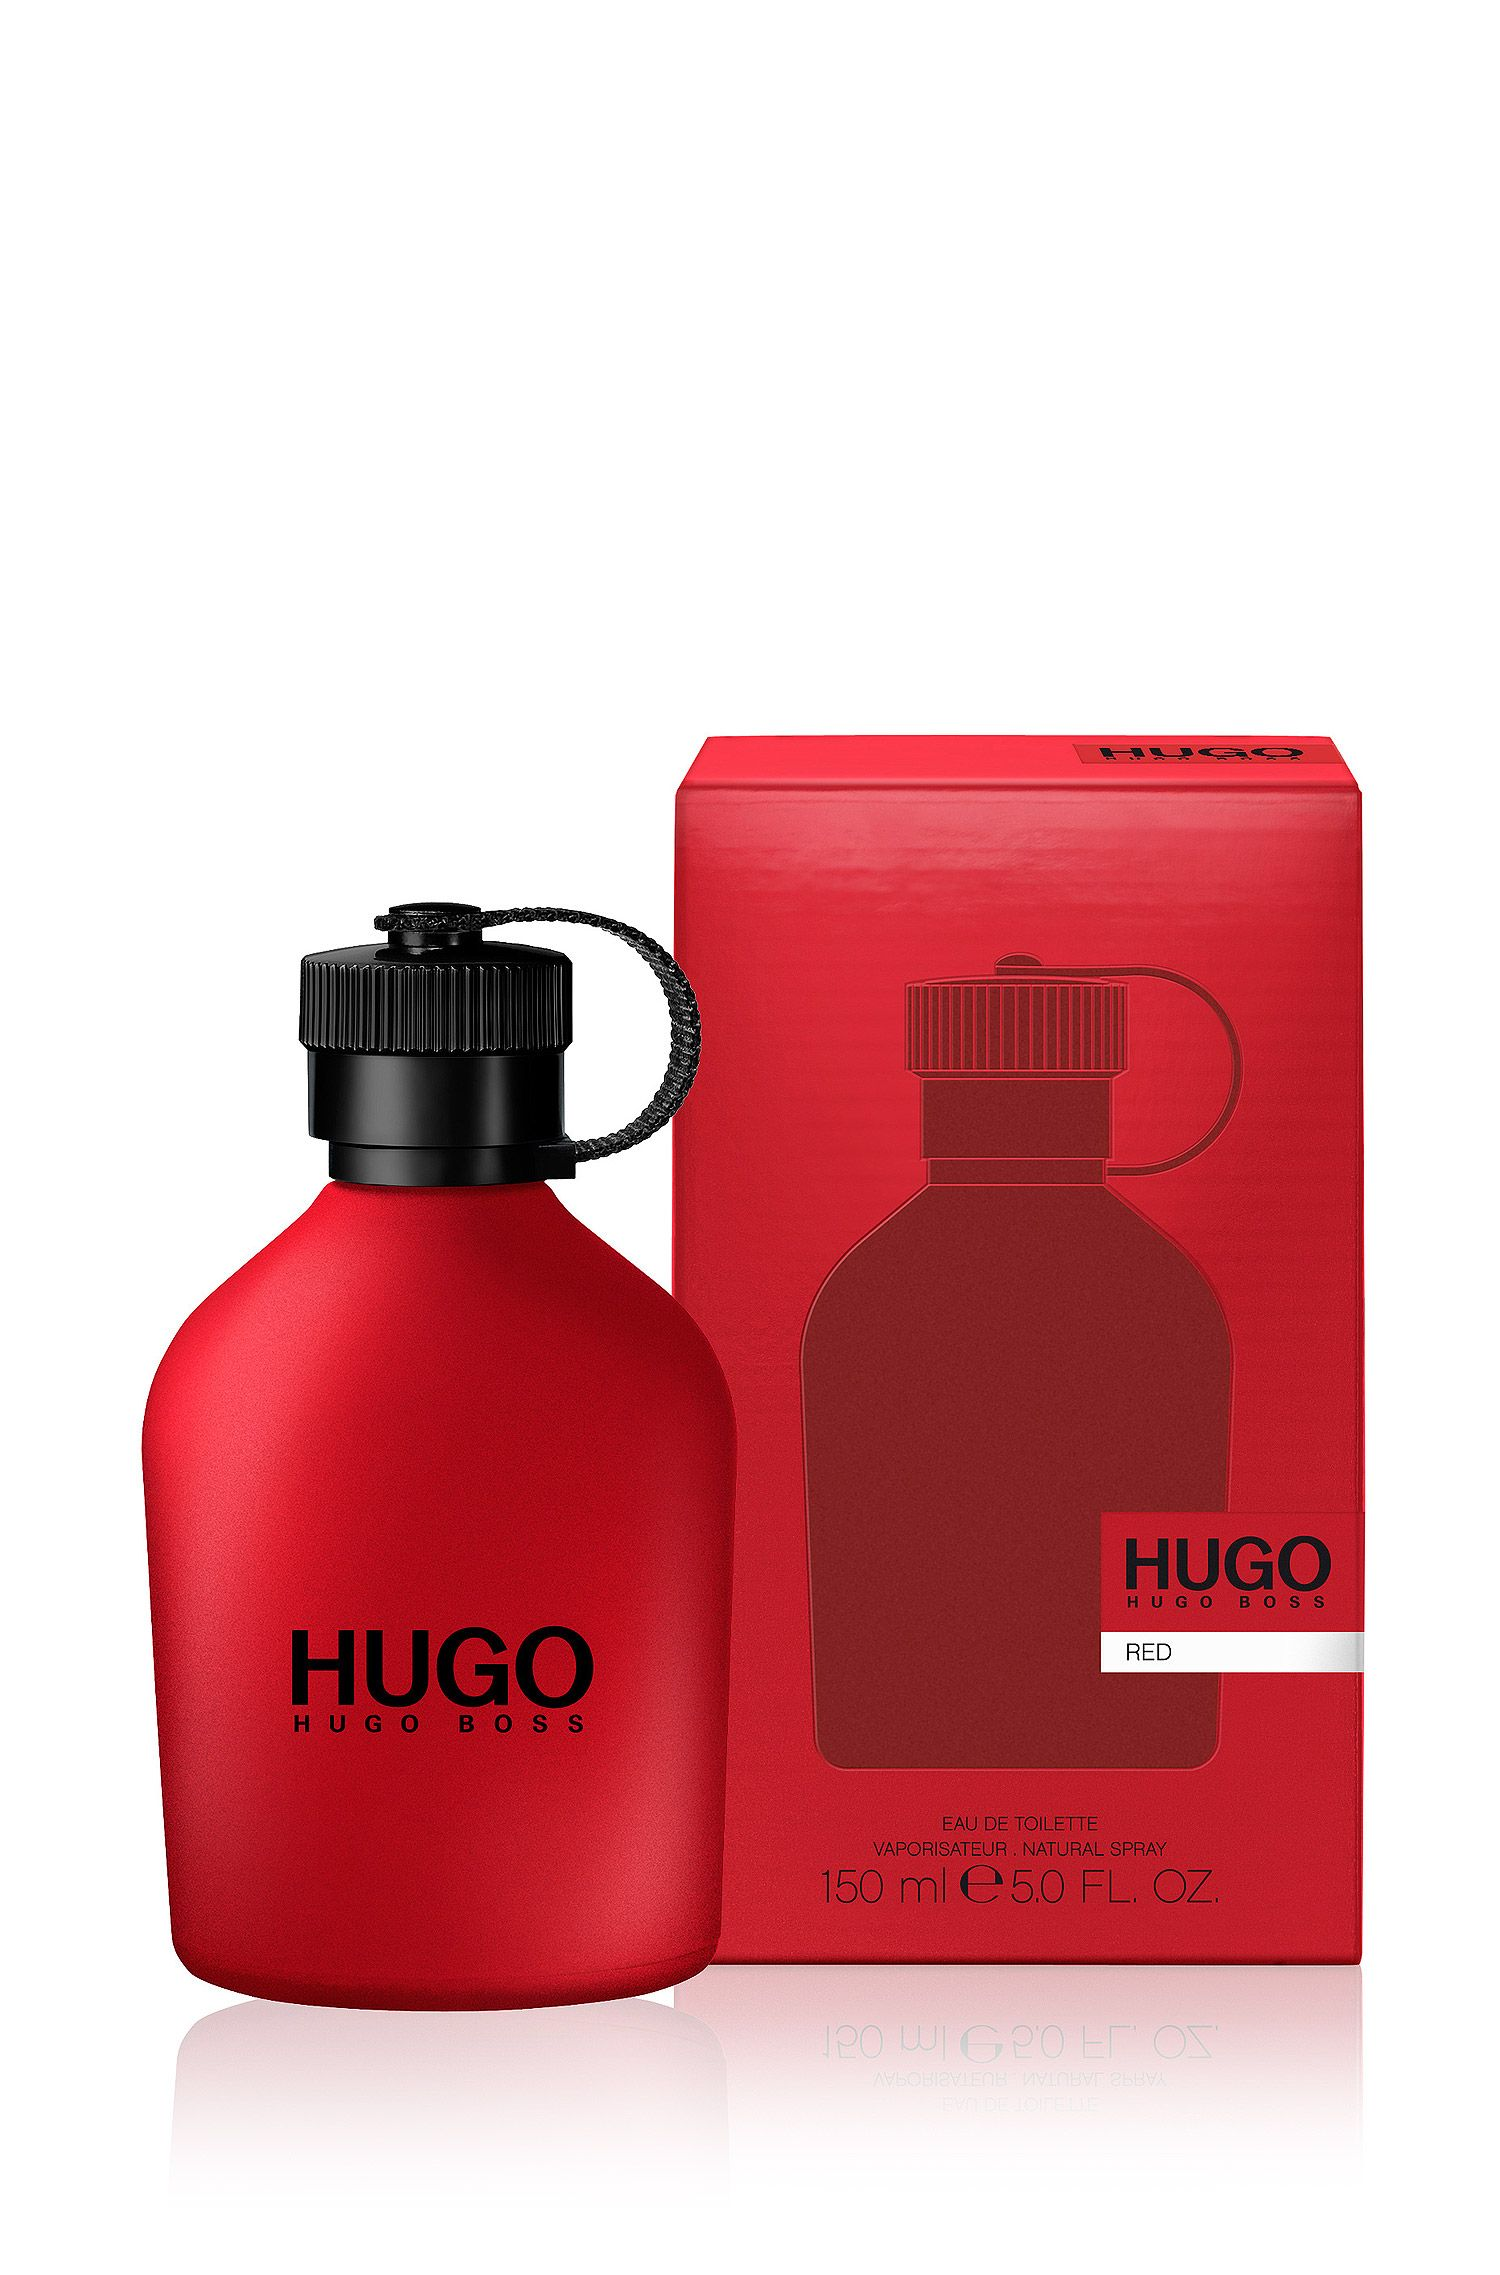 HUGO Red, eau de toilette 150 ml